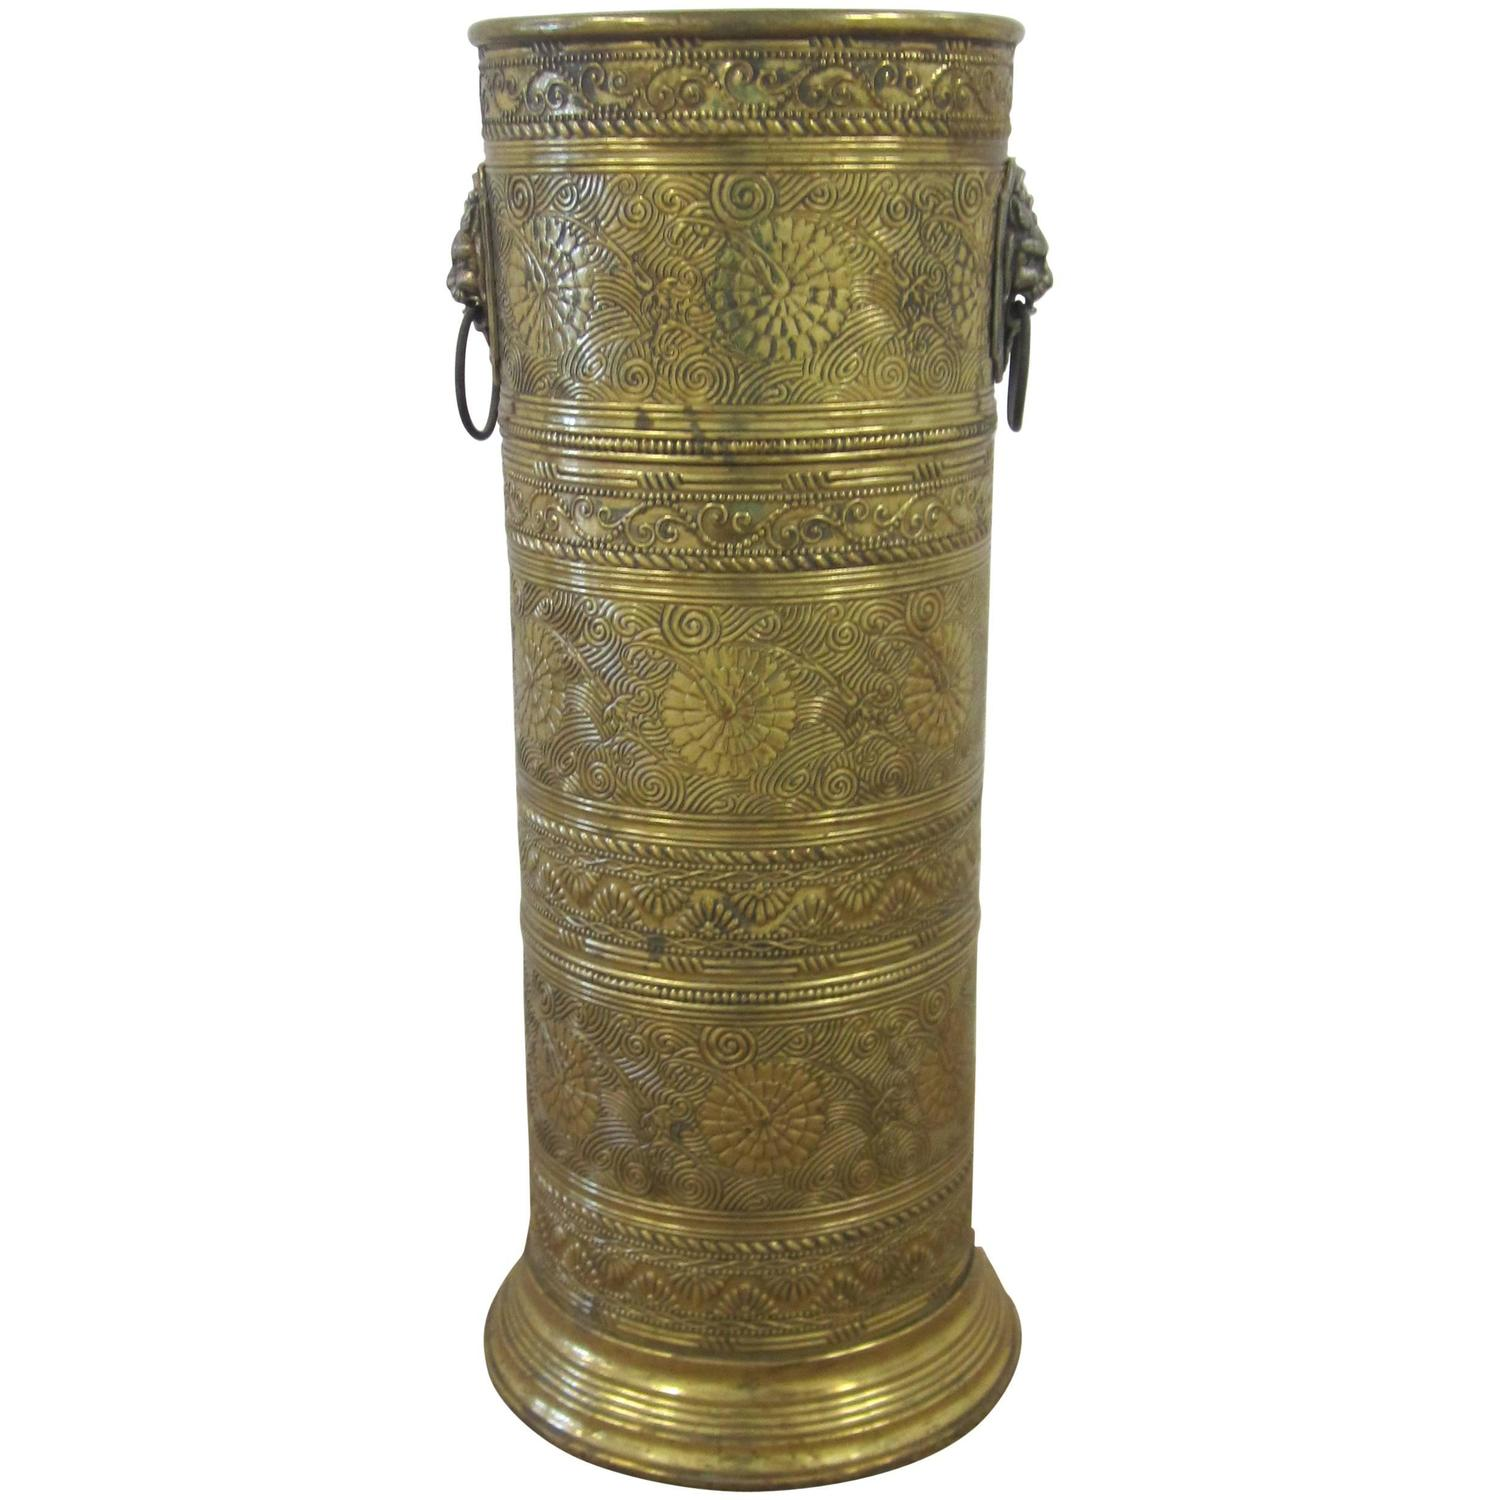 Brass Umbrella Stand Embossed: Vintage Brass Umbrella Stand With Decorative Lion Heads At